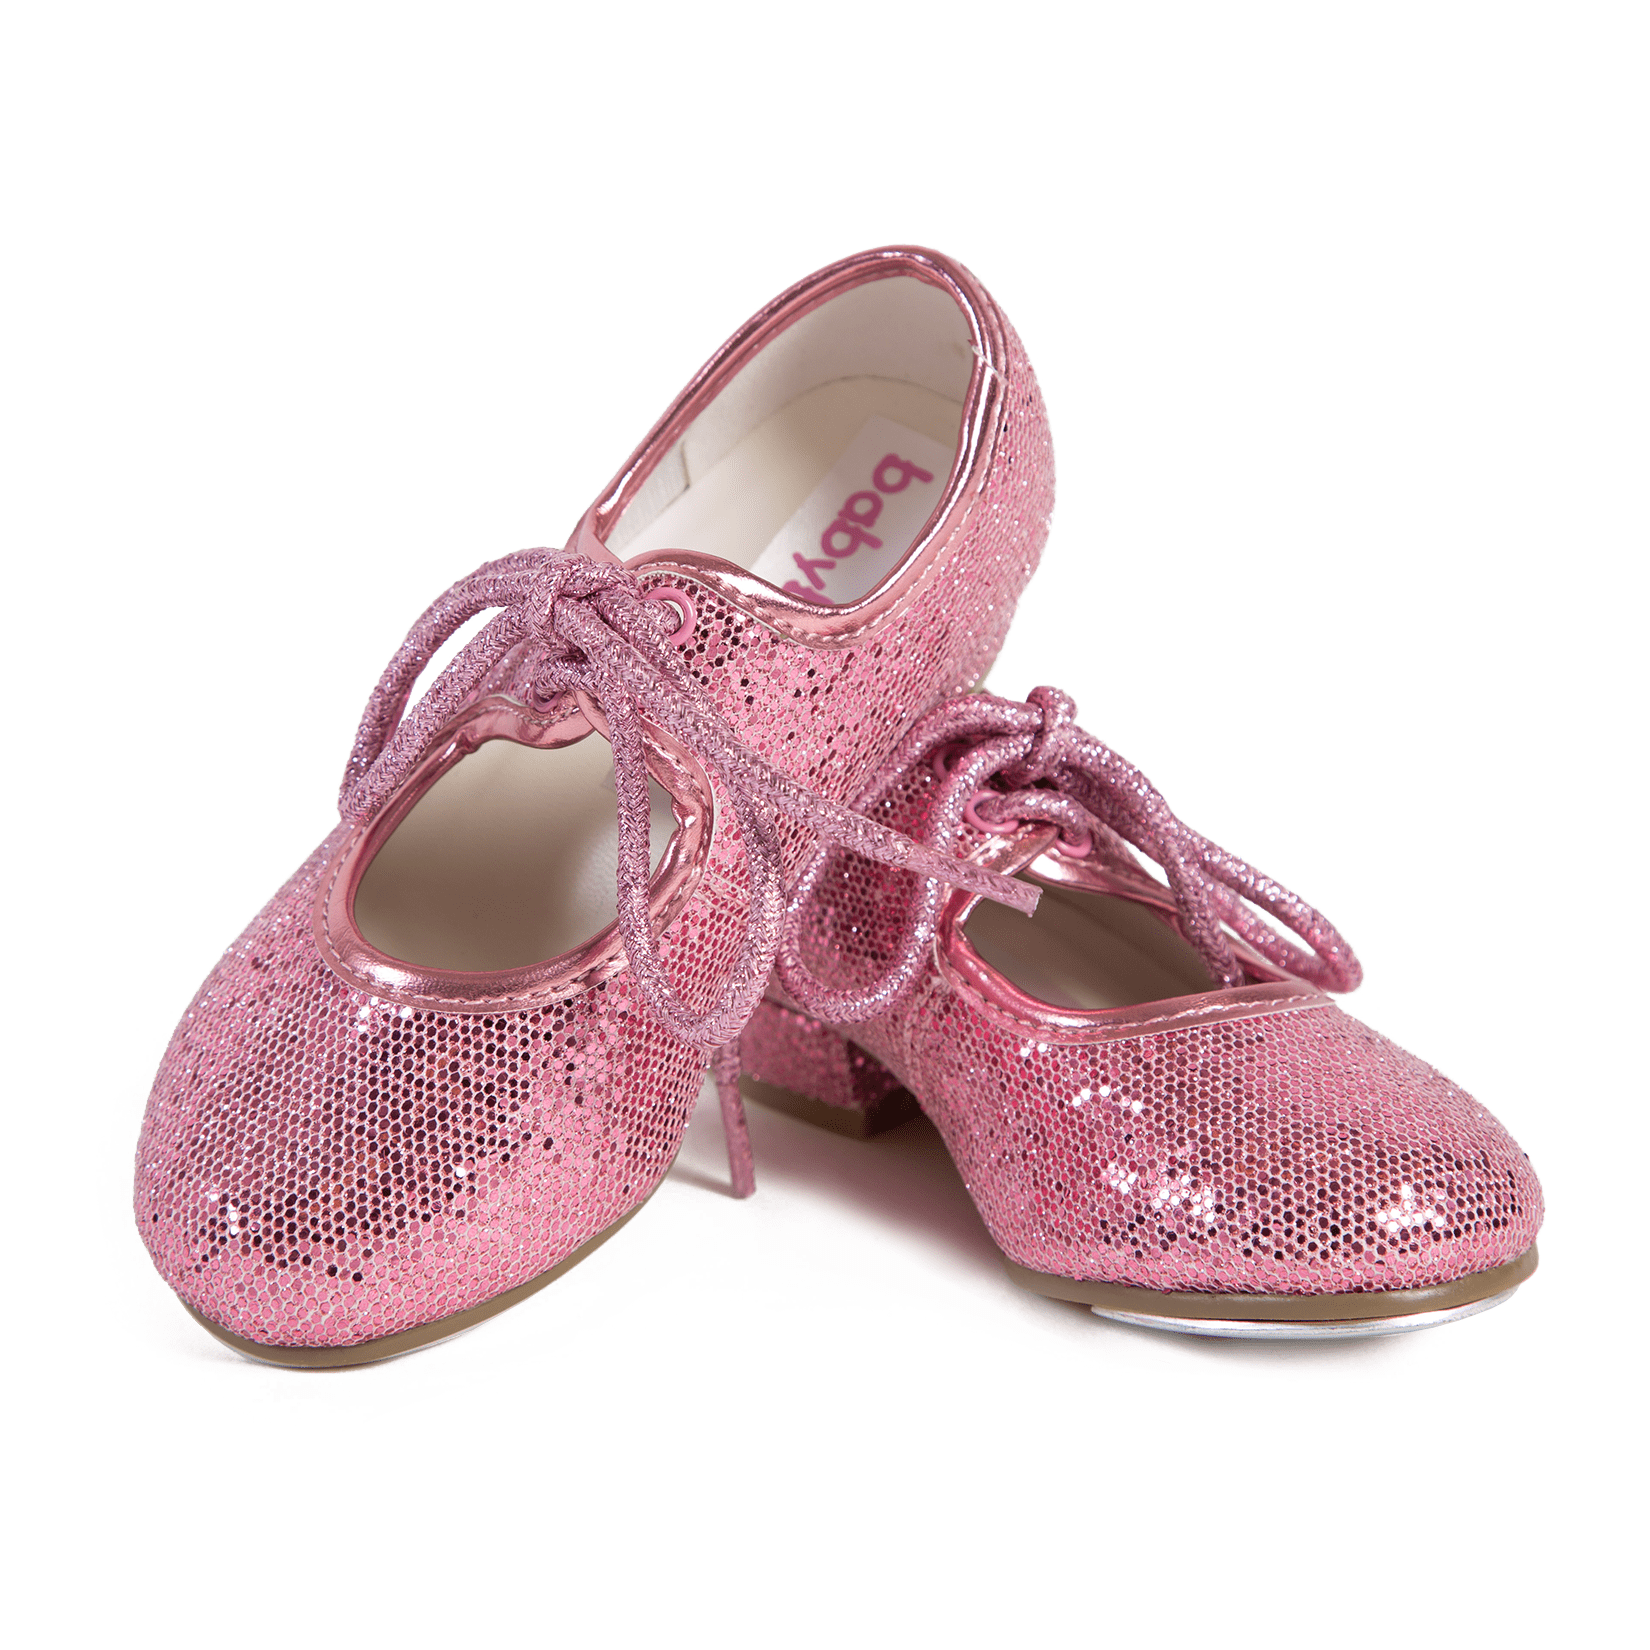 Girls Purple Ballet Shoes